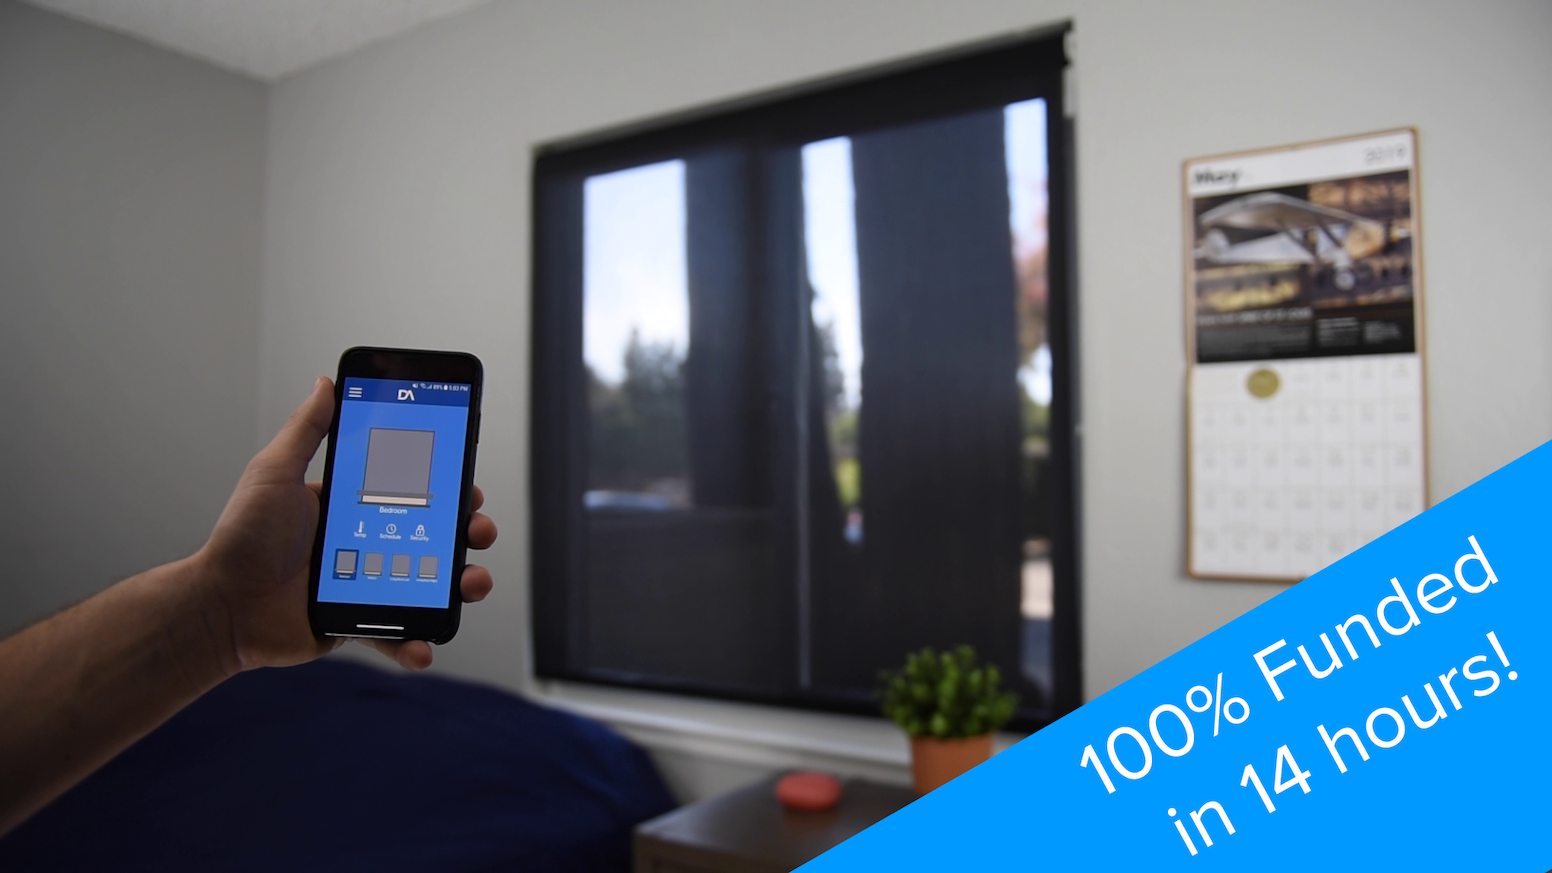 Every smart home needs smart shades. AutoShades won't cost you a fortune.   Simple. Affordable. Smart Window Shades.